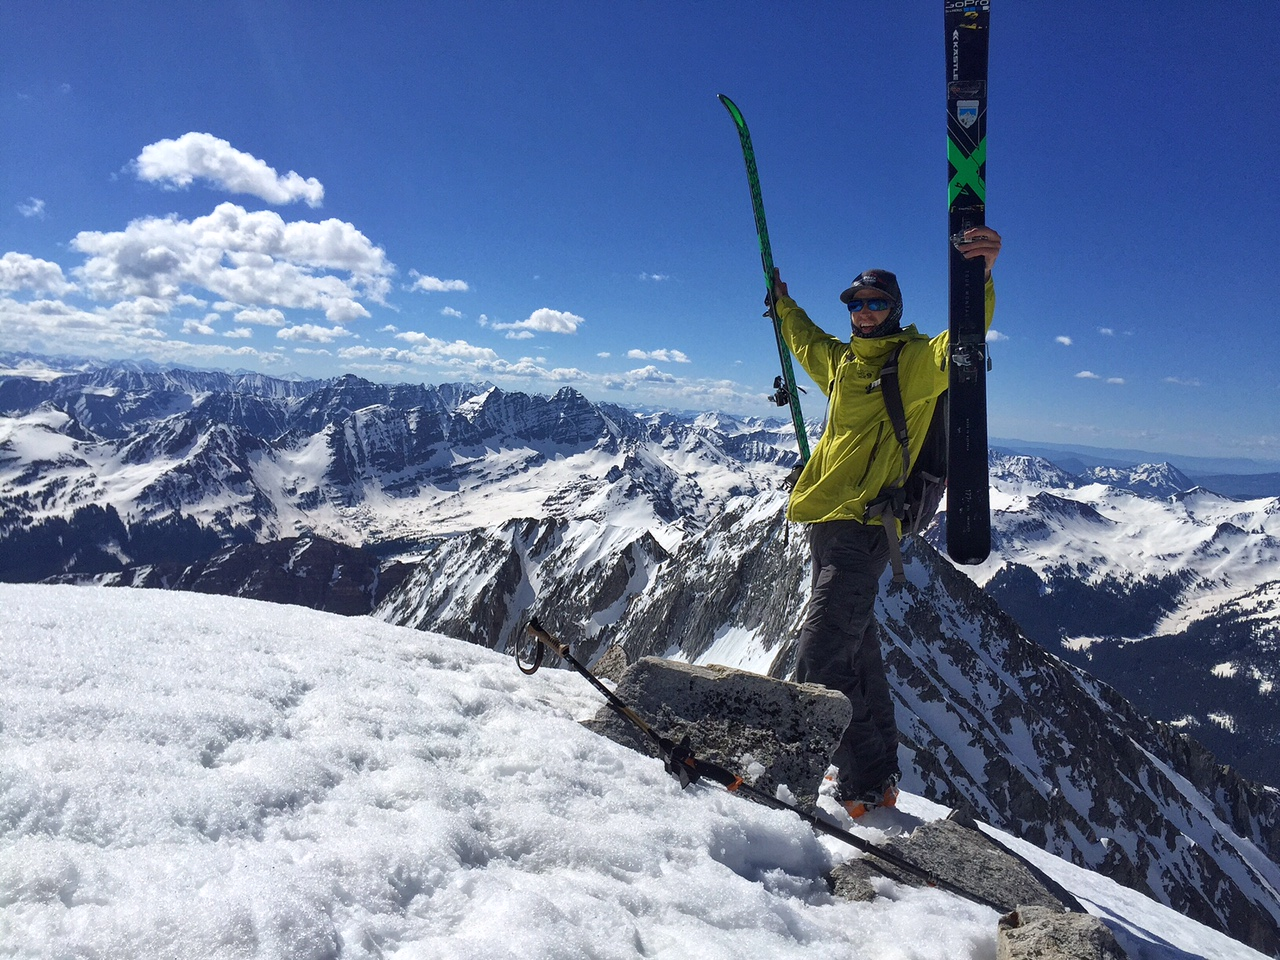 Top of the world on Snowmass 14,092'